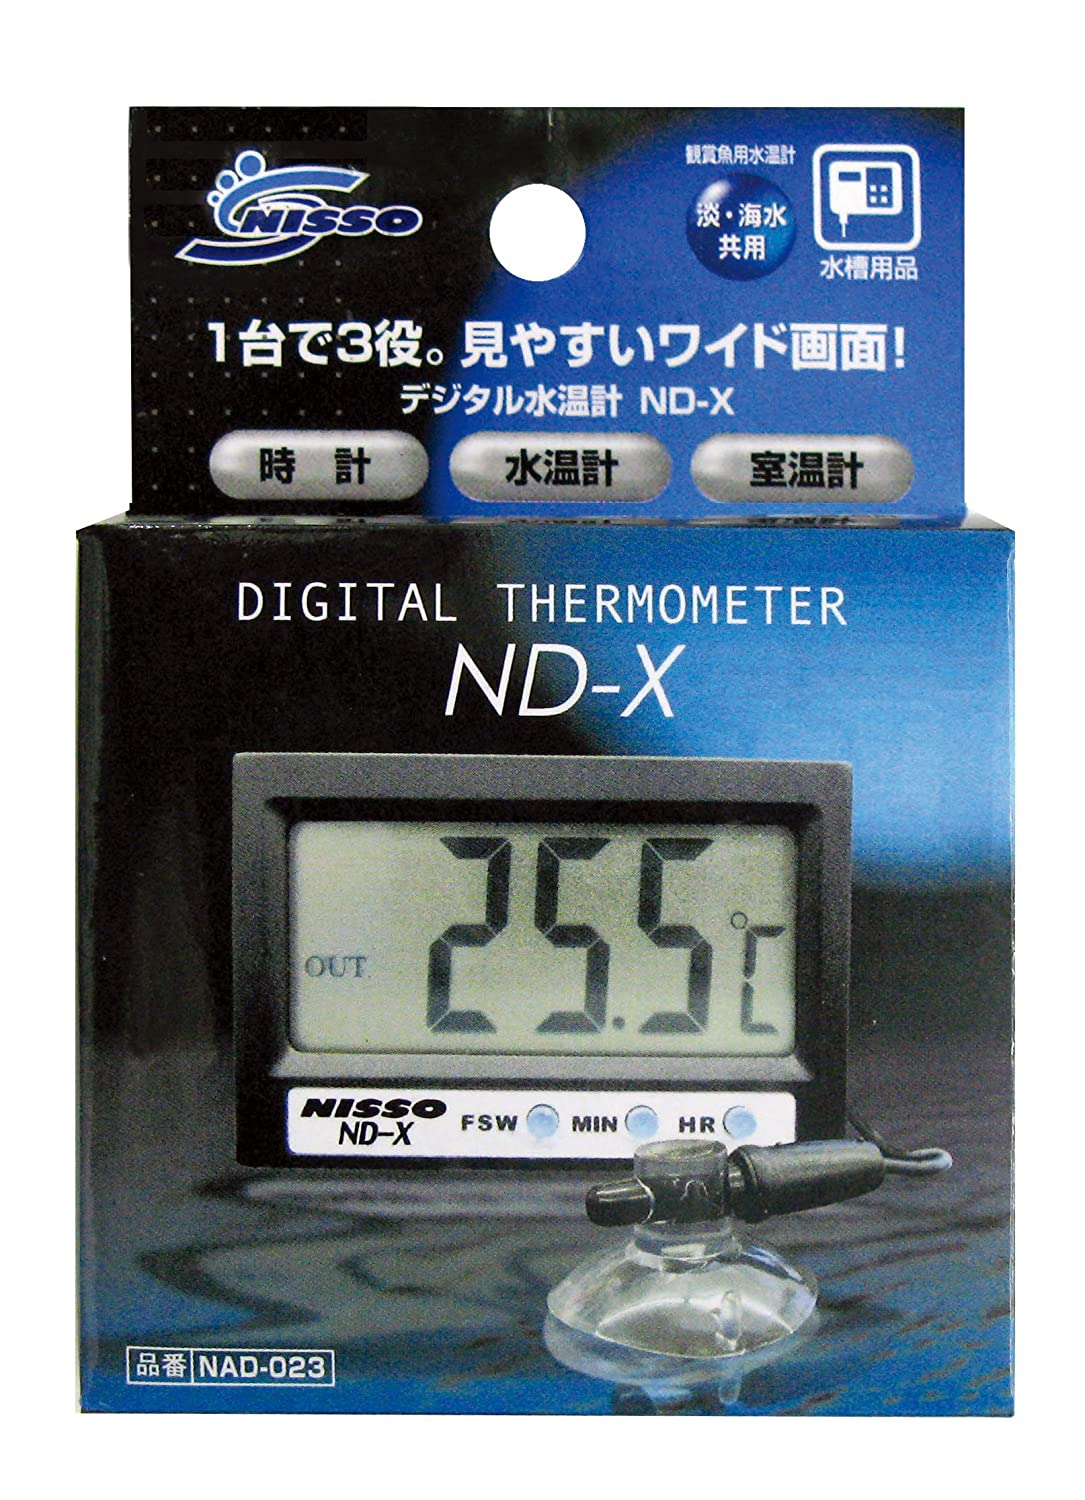 Nisso Digital Thermometer ND-X for Fish Tank